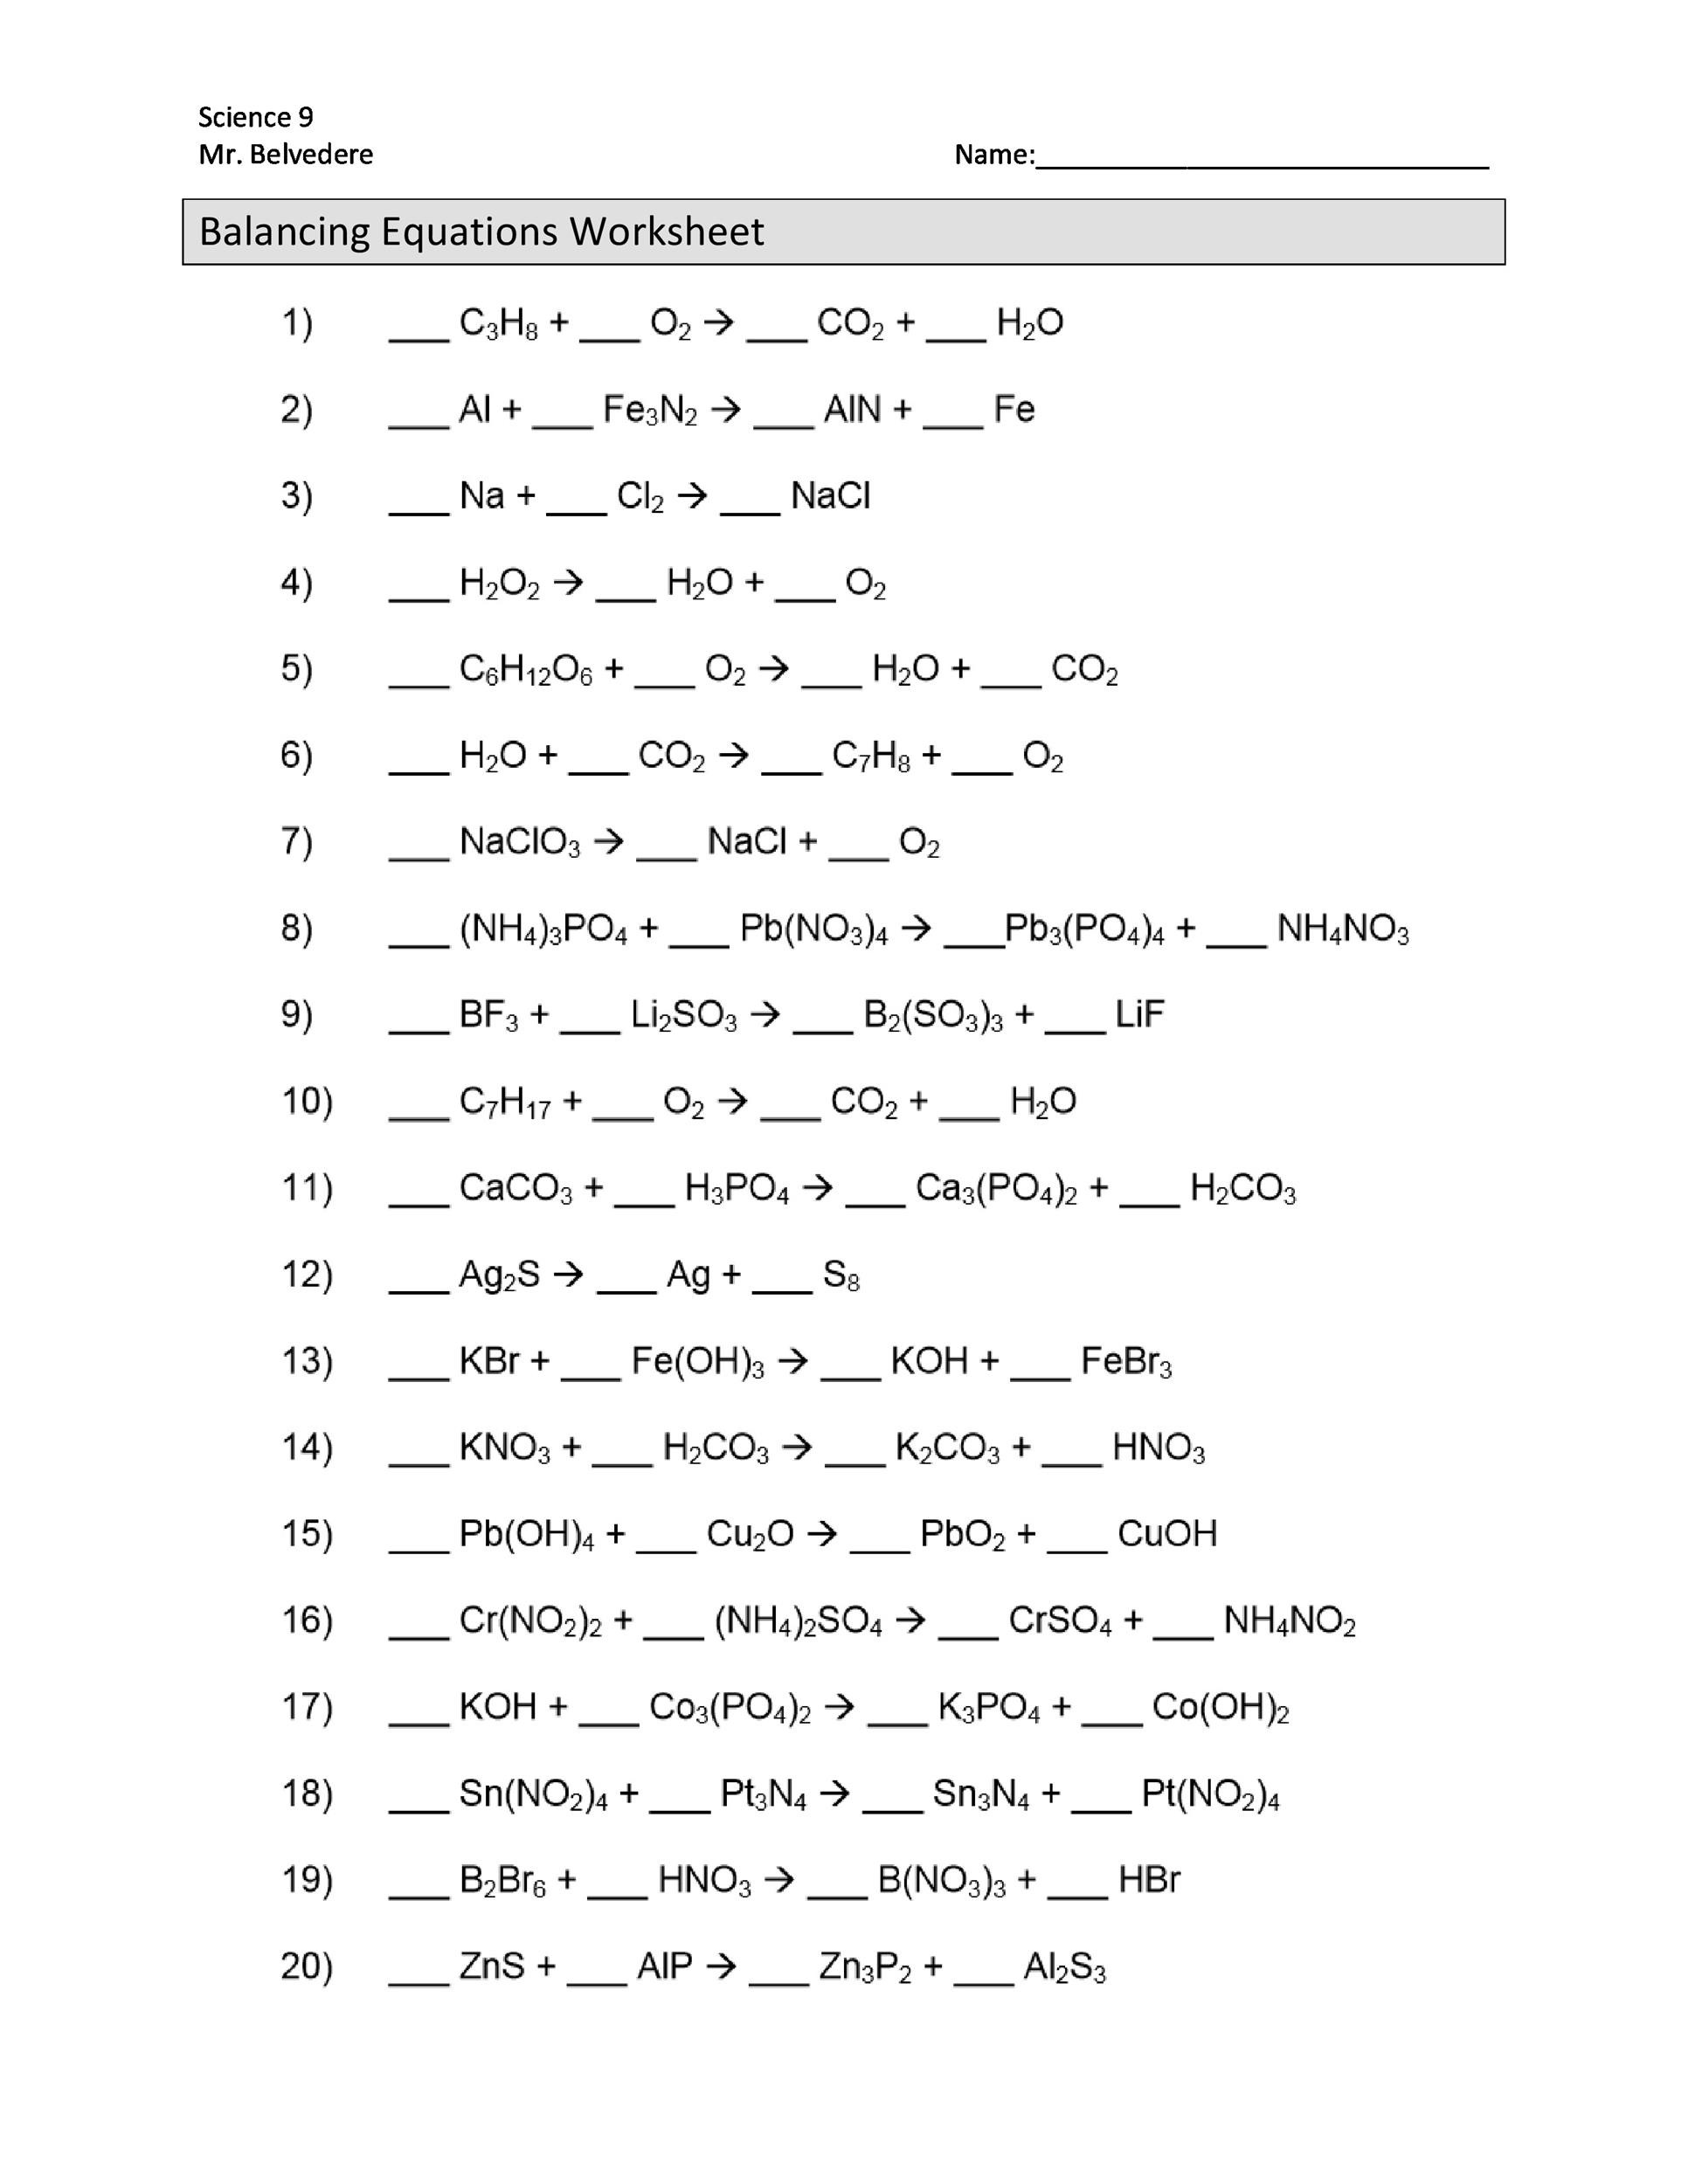 Conservation Of Mass Worksheet 49 Balancing Chemical Equations Worksheets [with Answers]